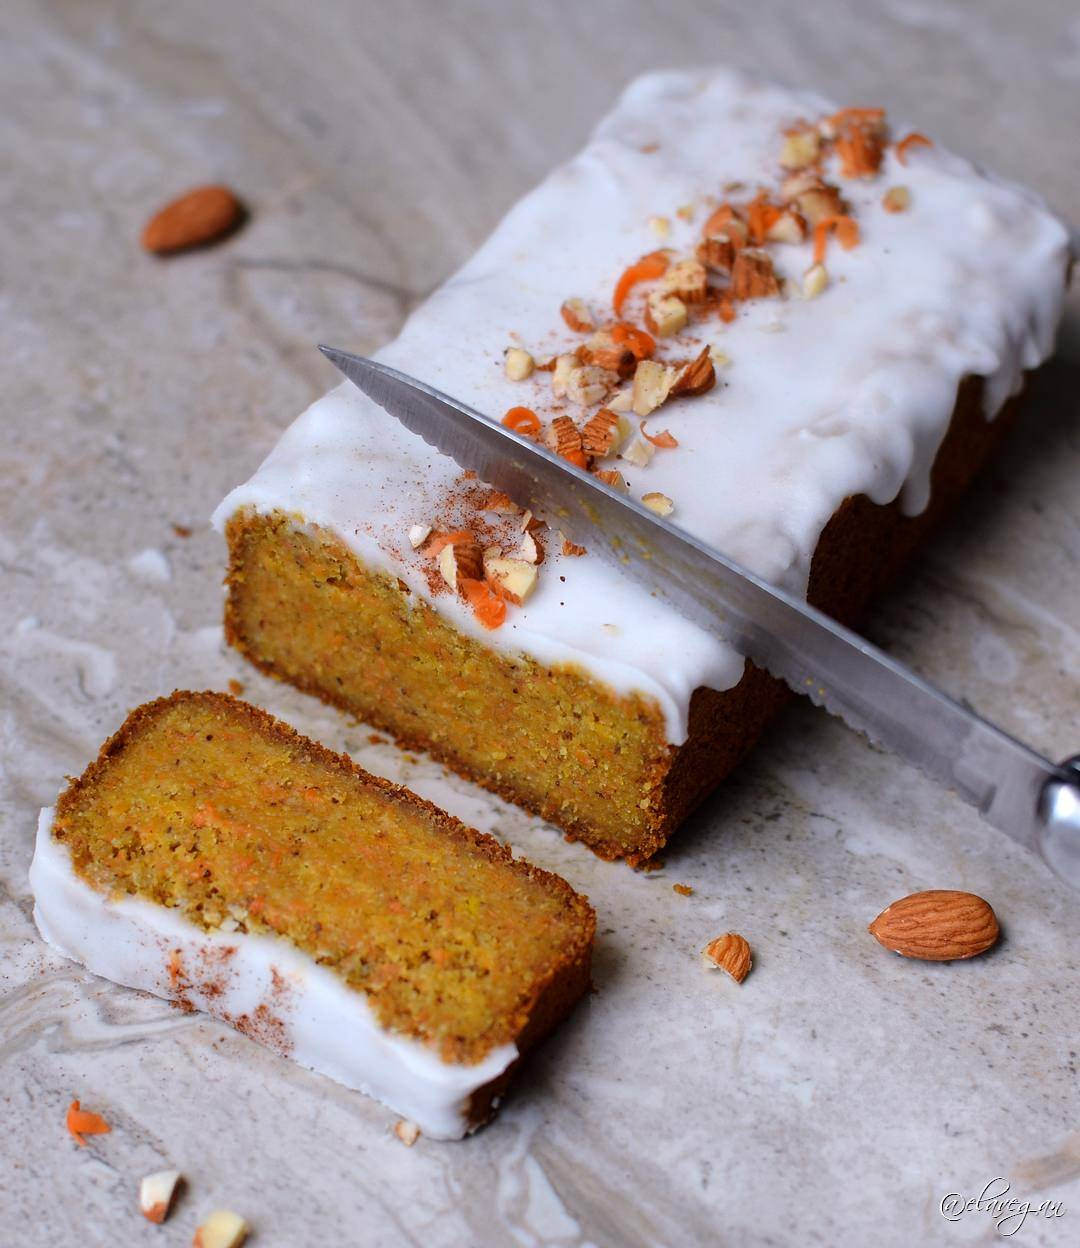 How Do You Make Gluten Free Carrot Cake